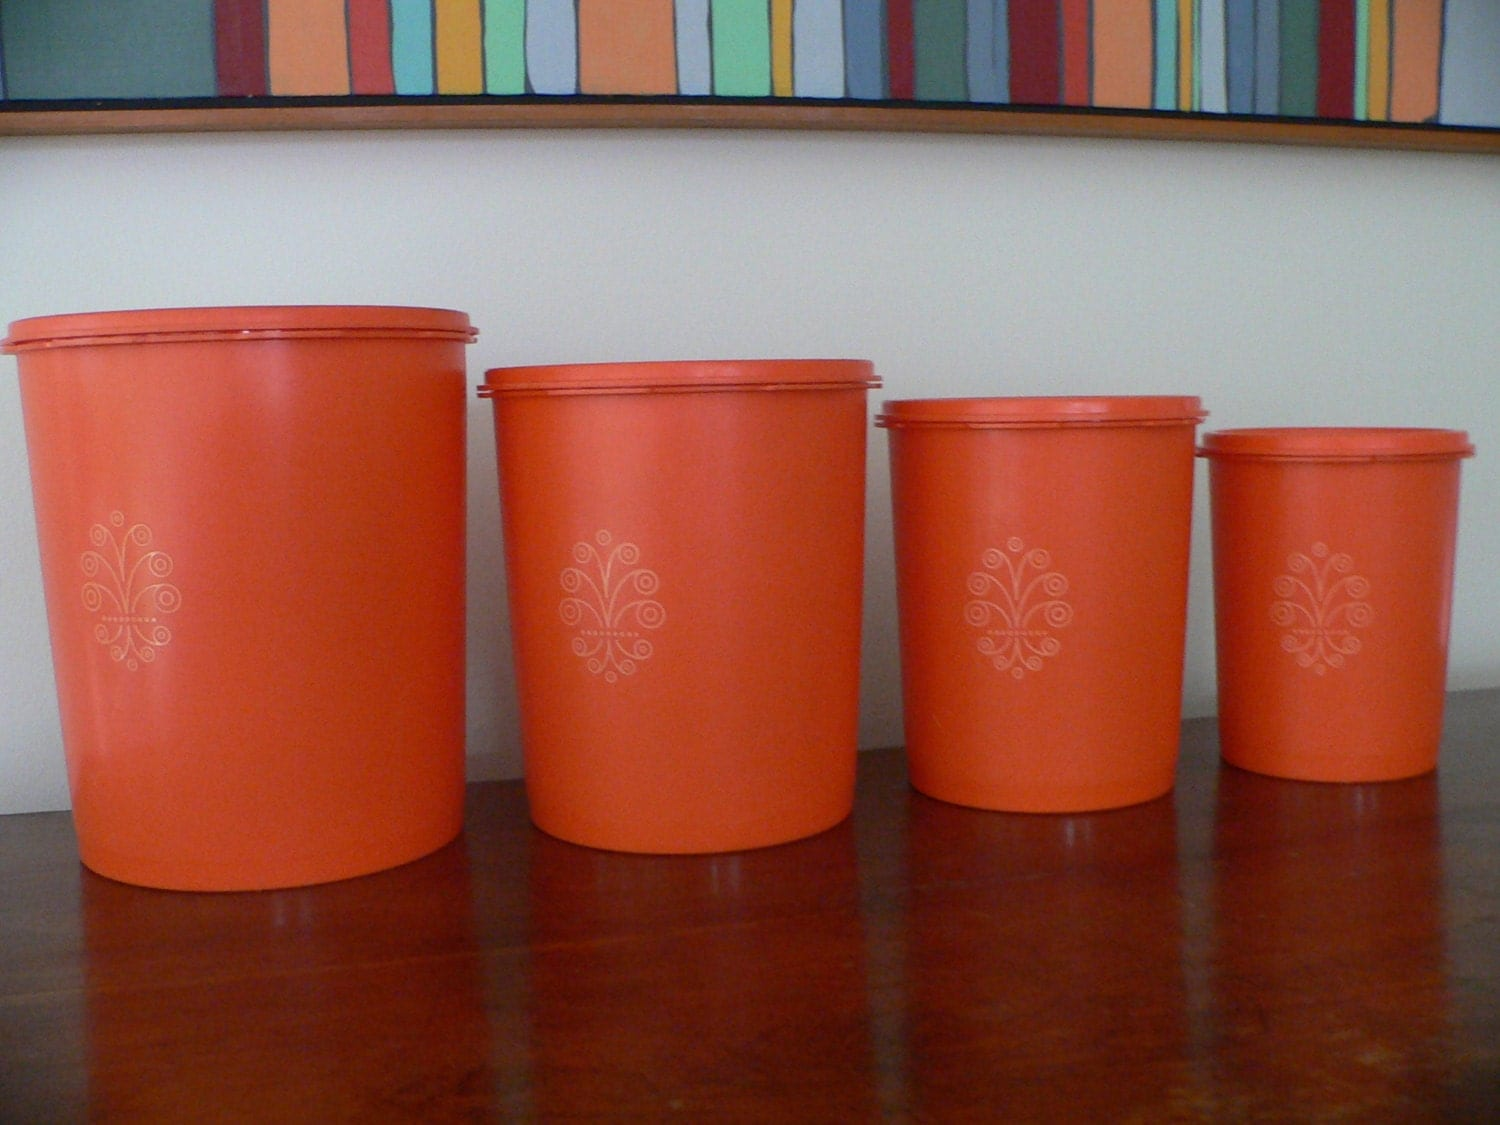 Retro Kitchen Canisters Red Kitchen Canisters Set Orange Canister Best Home Decoration